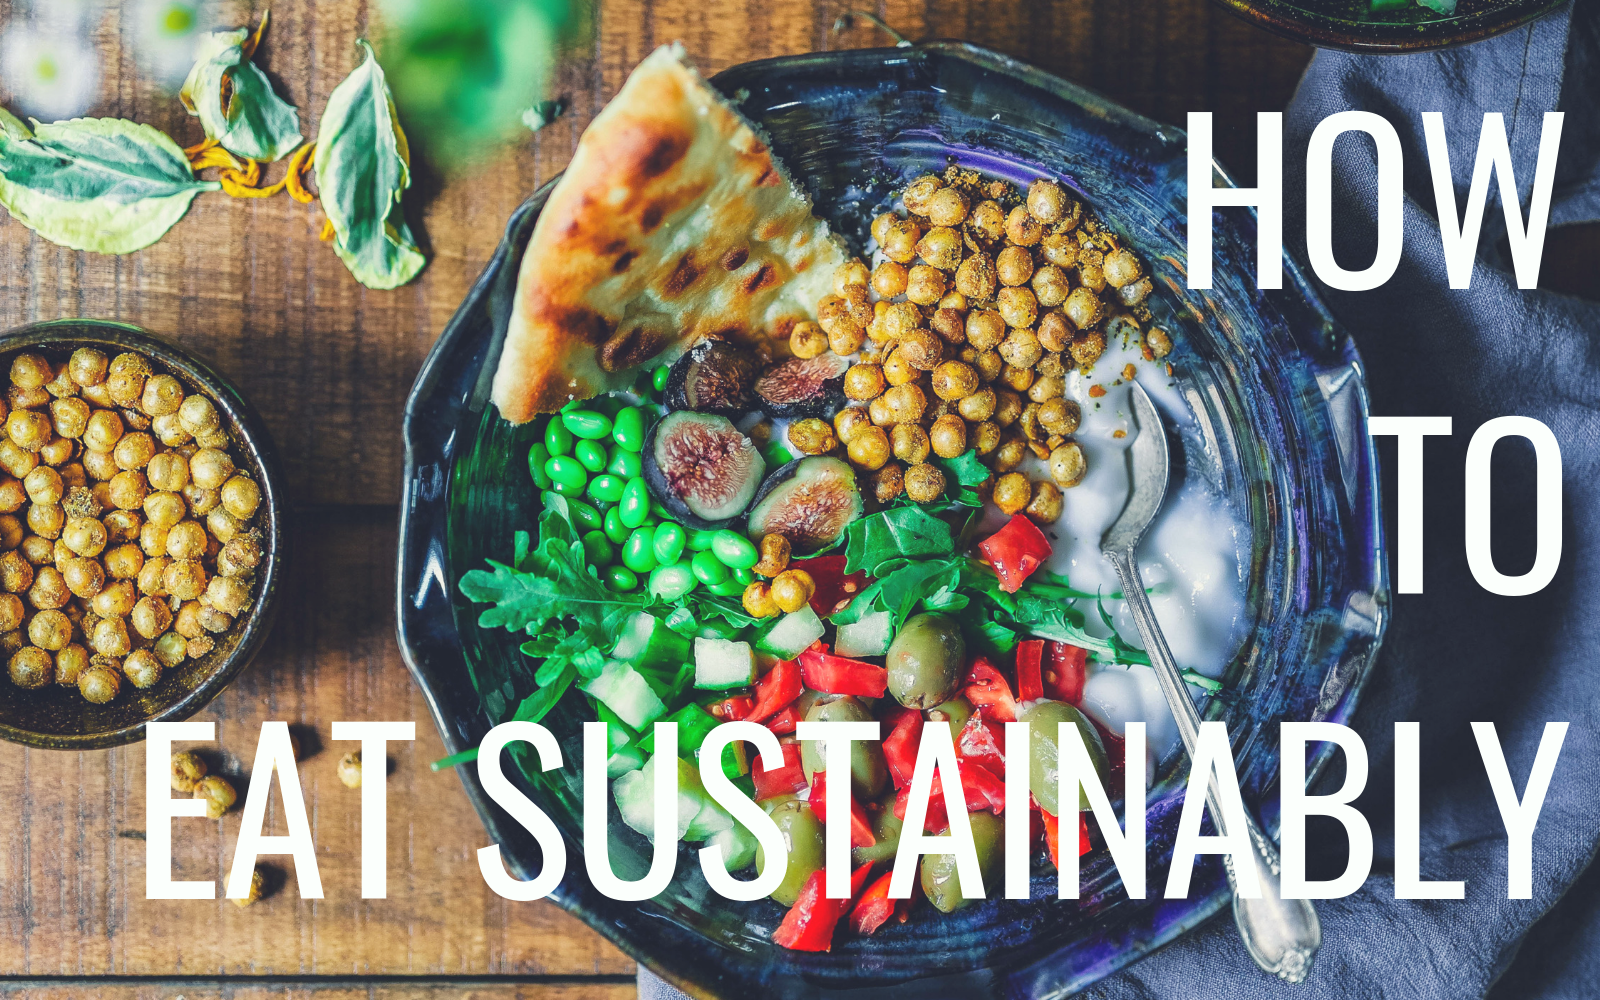 How to Eat Sustainably (2019 Guide)